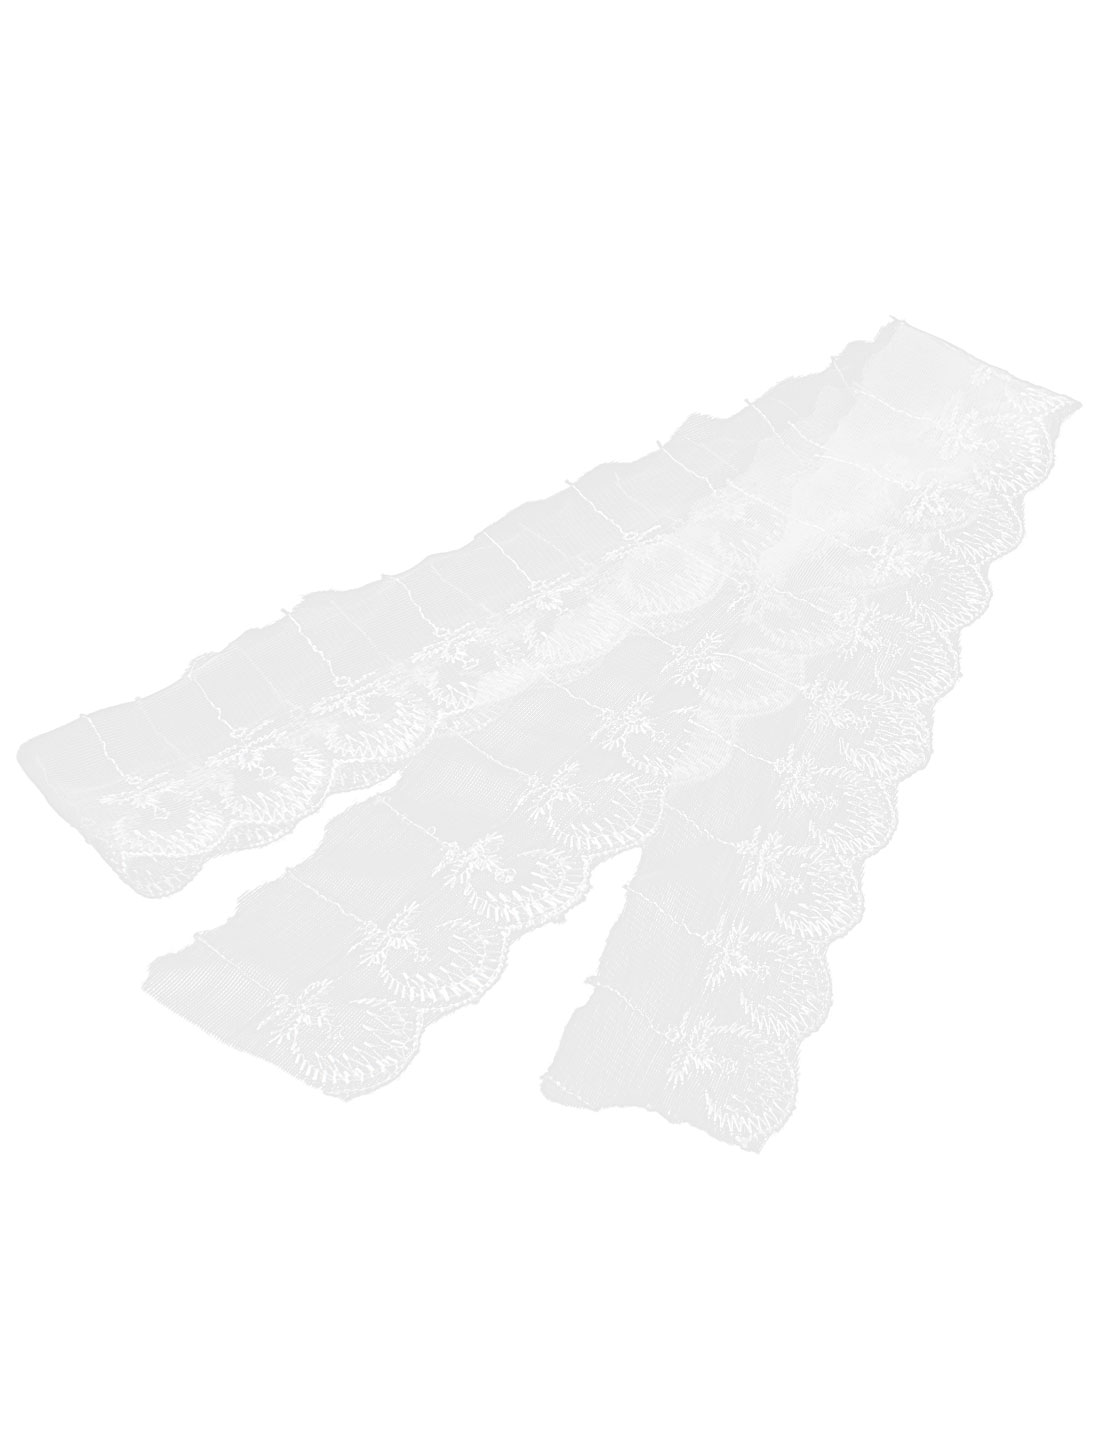 Wedding Craft Embroidered Net Lace Trim Ribbon White 1M Length 6cm Width